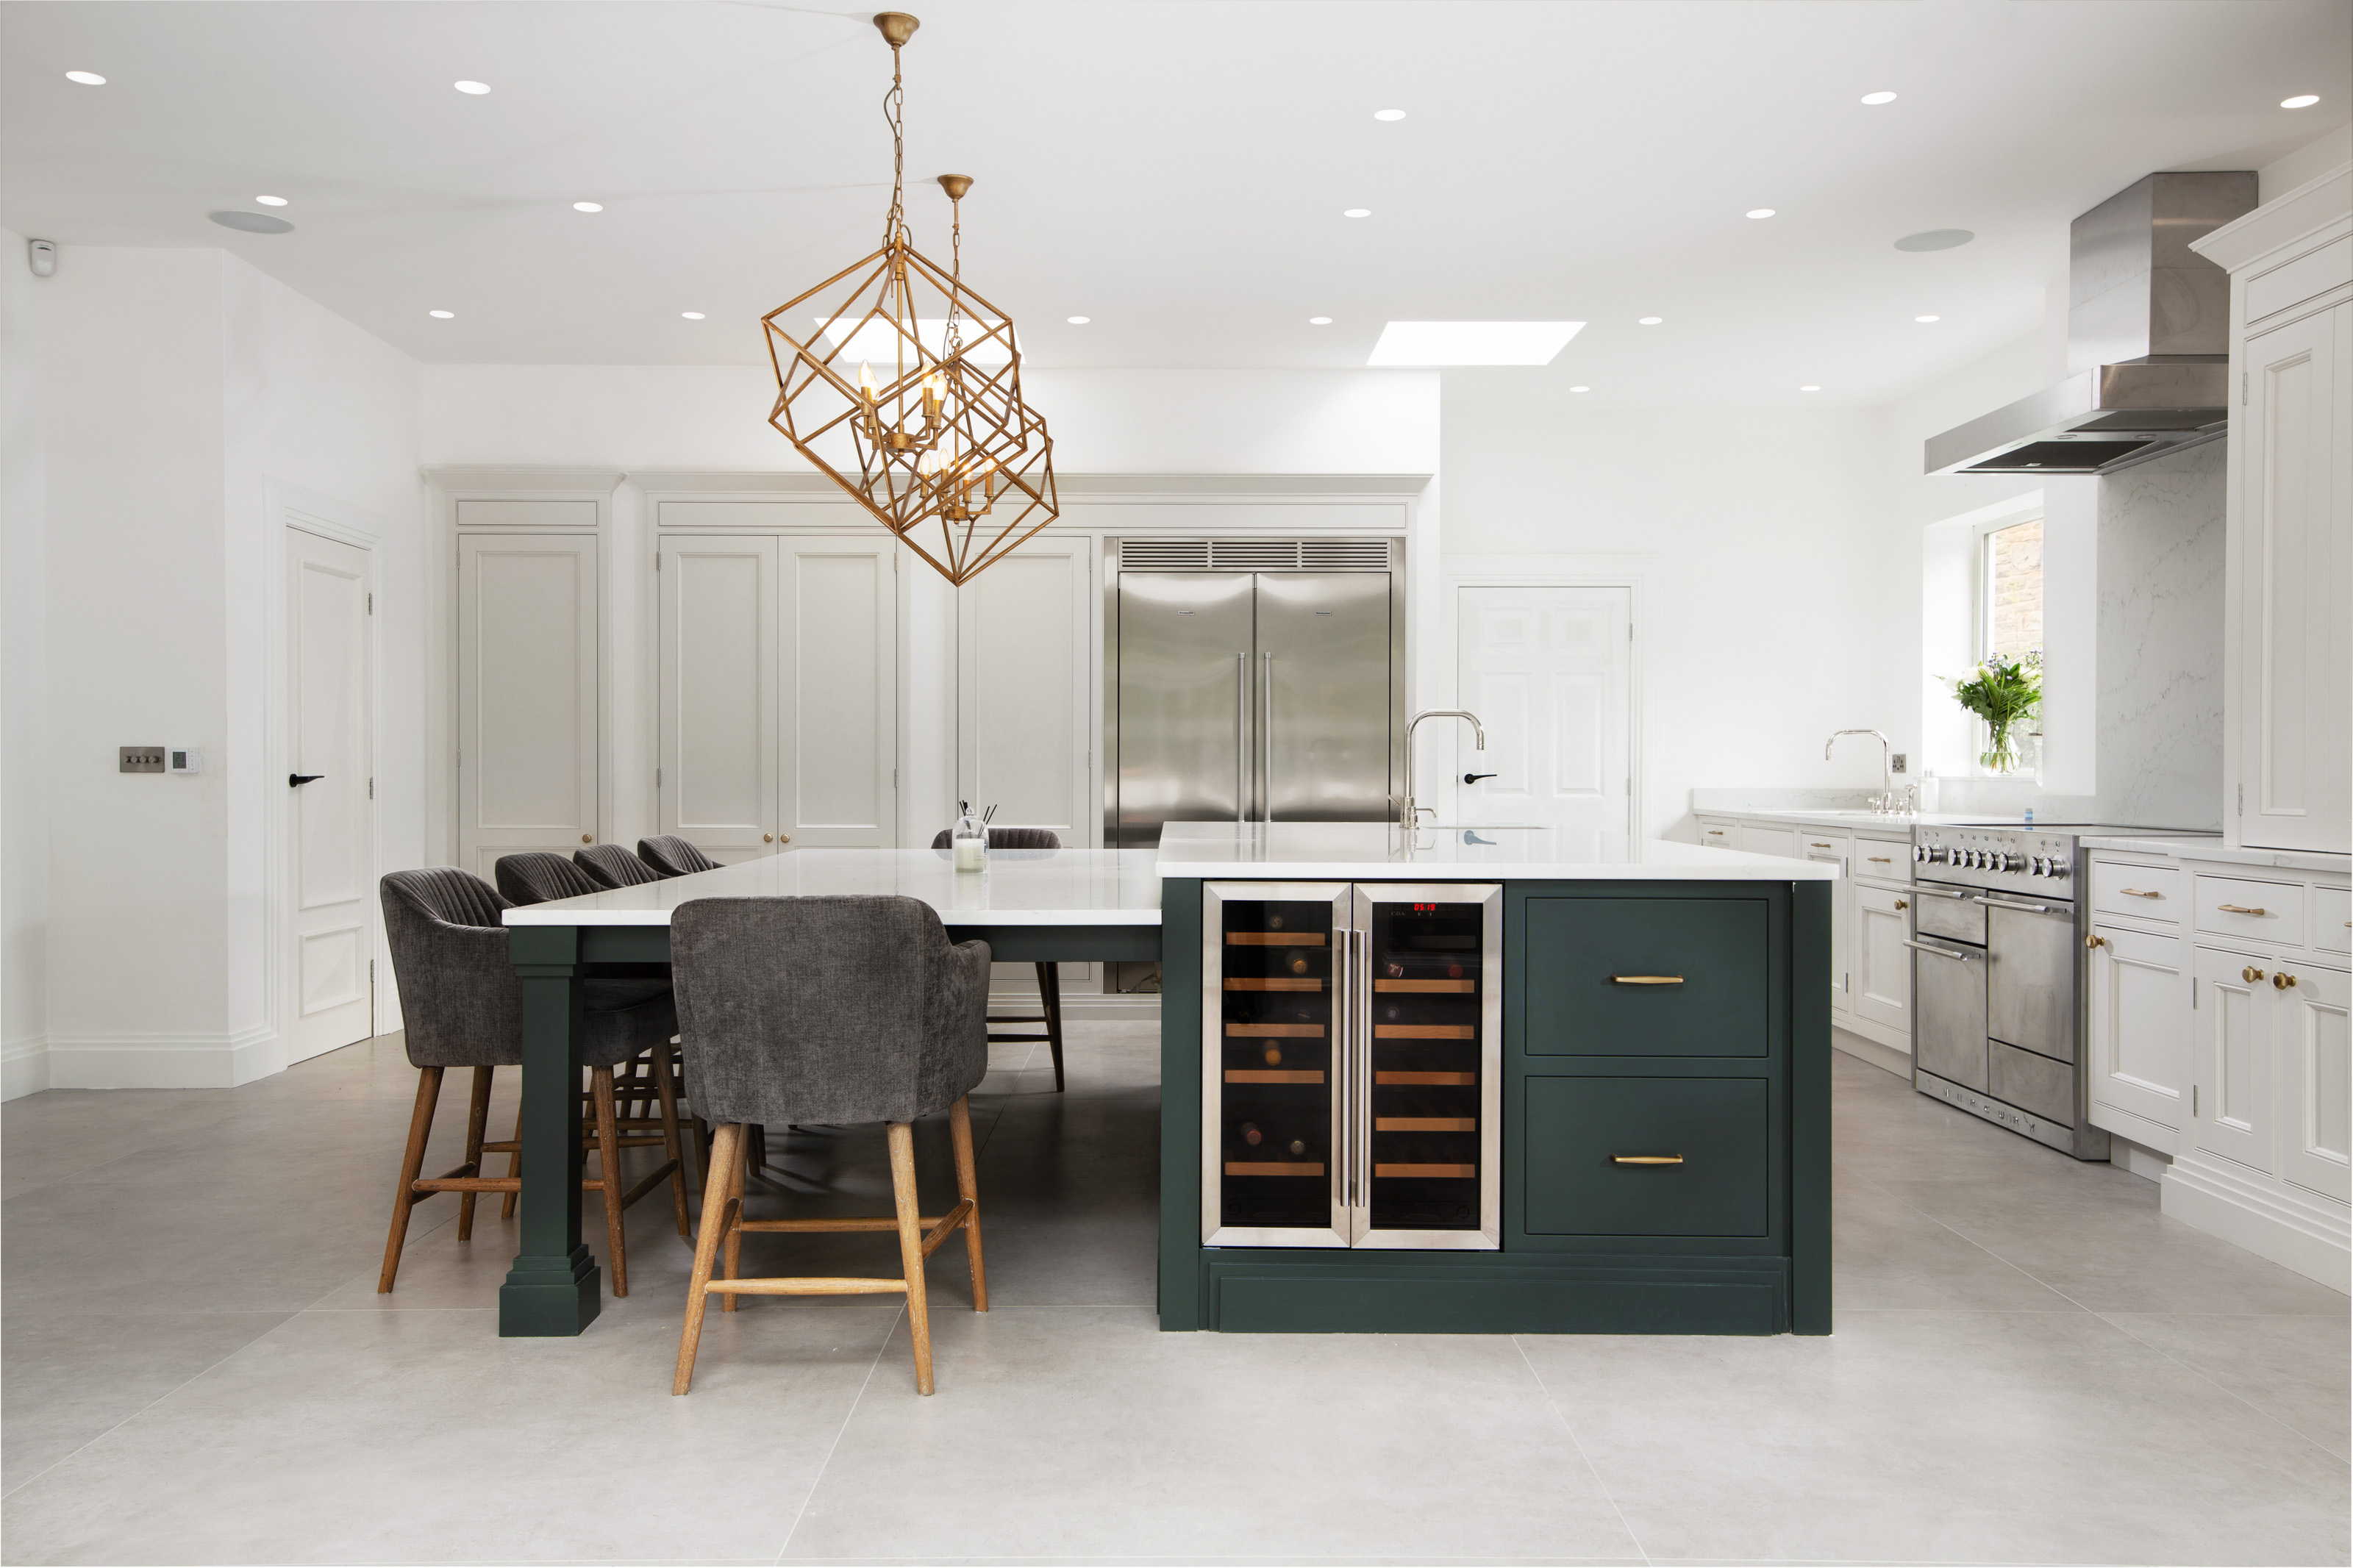 Watsons_Kitchens_Harrogate-3